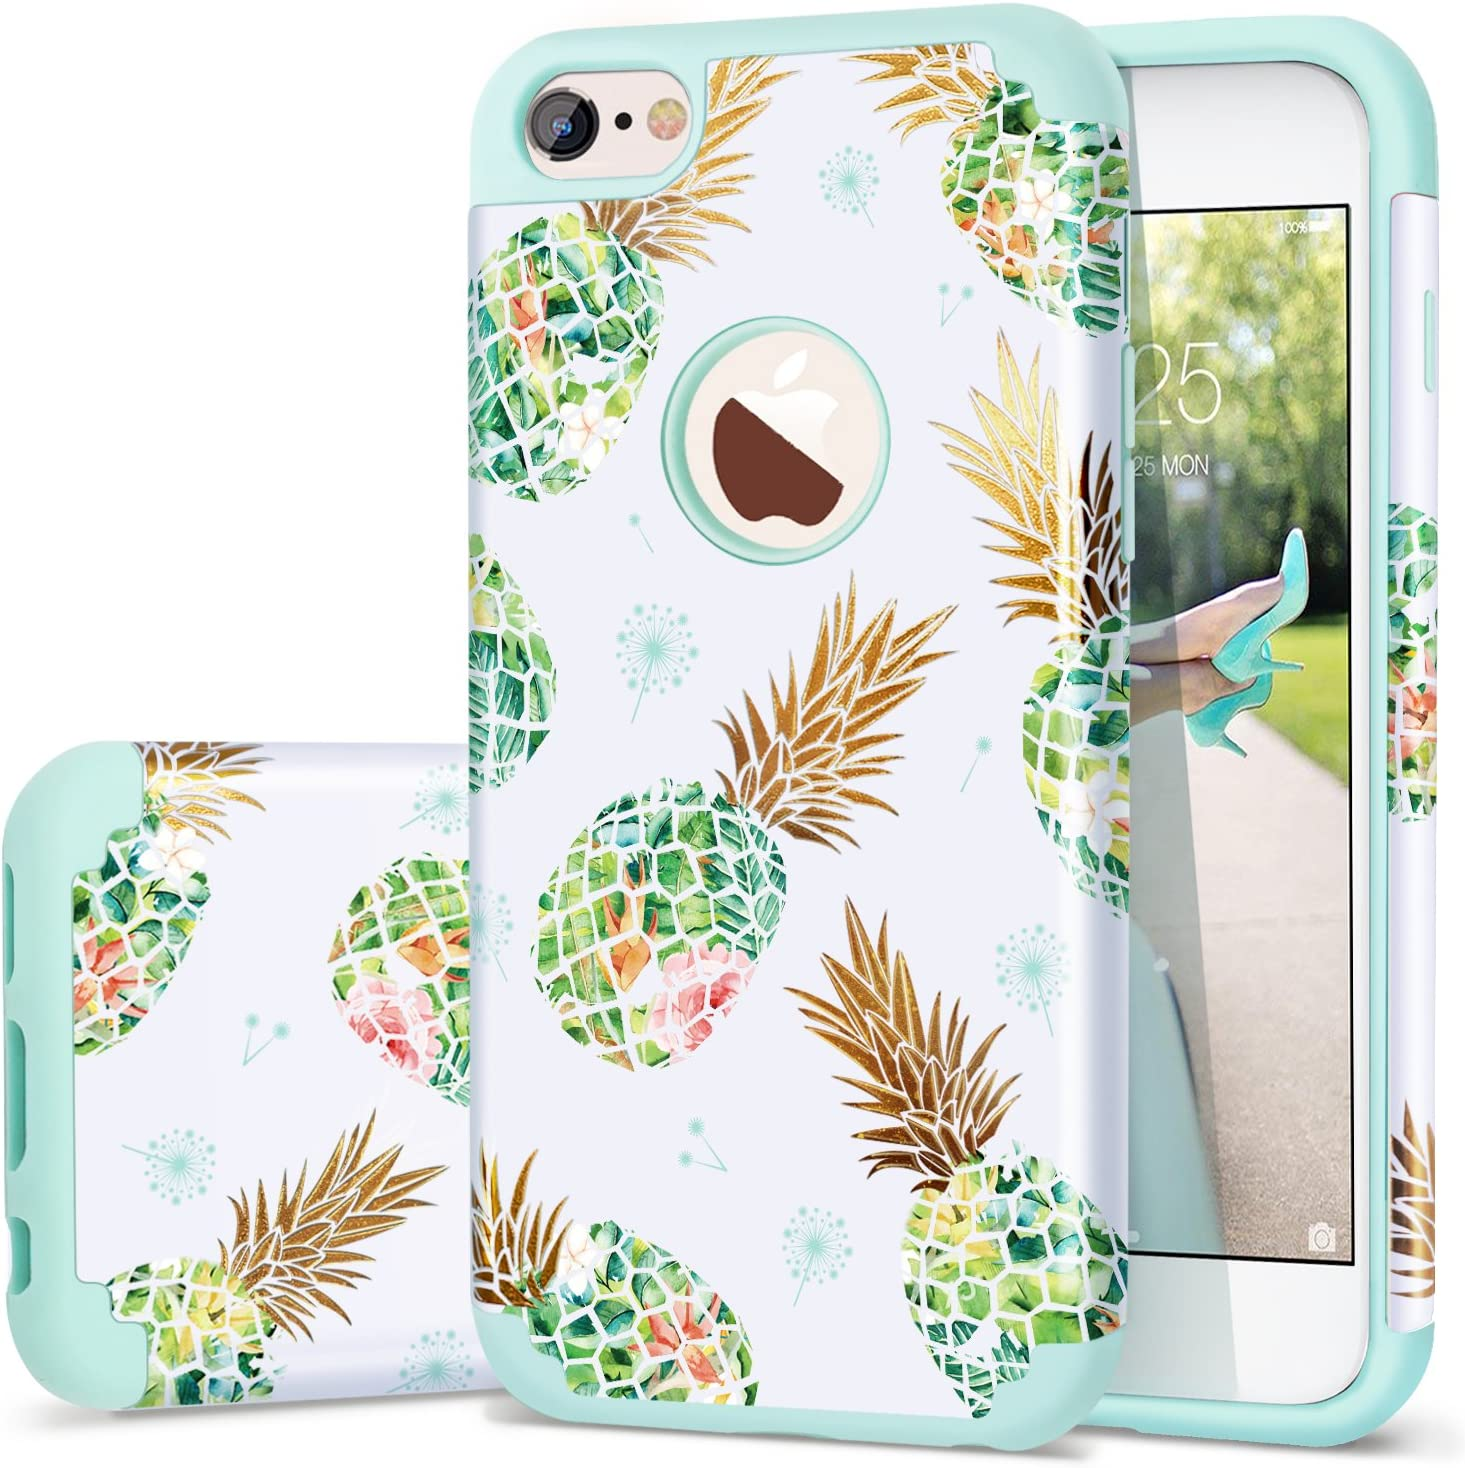 """Fingic iPhone 6s Case, iPhone 6 Case Pineapple, Shiny Slim Pineapple Design Summer Case Hard PC Soft Rubber Anti-Scratch Shock Proof Protective Case Cover for iPhone 6/6s 4.7"""",Green"""